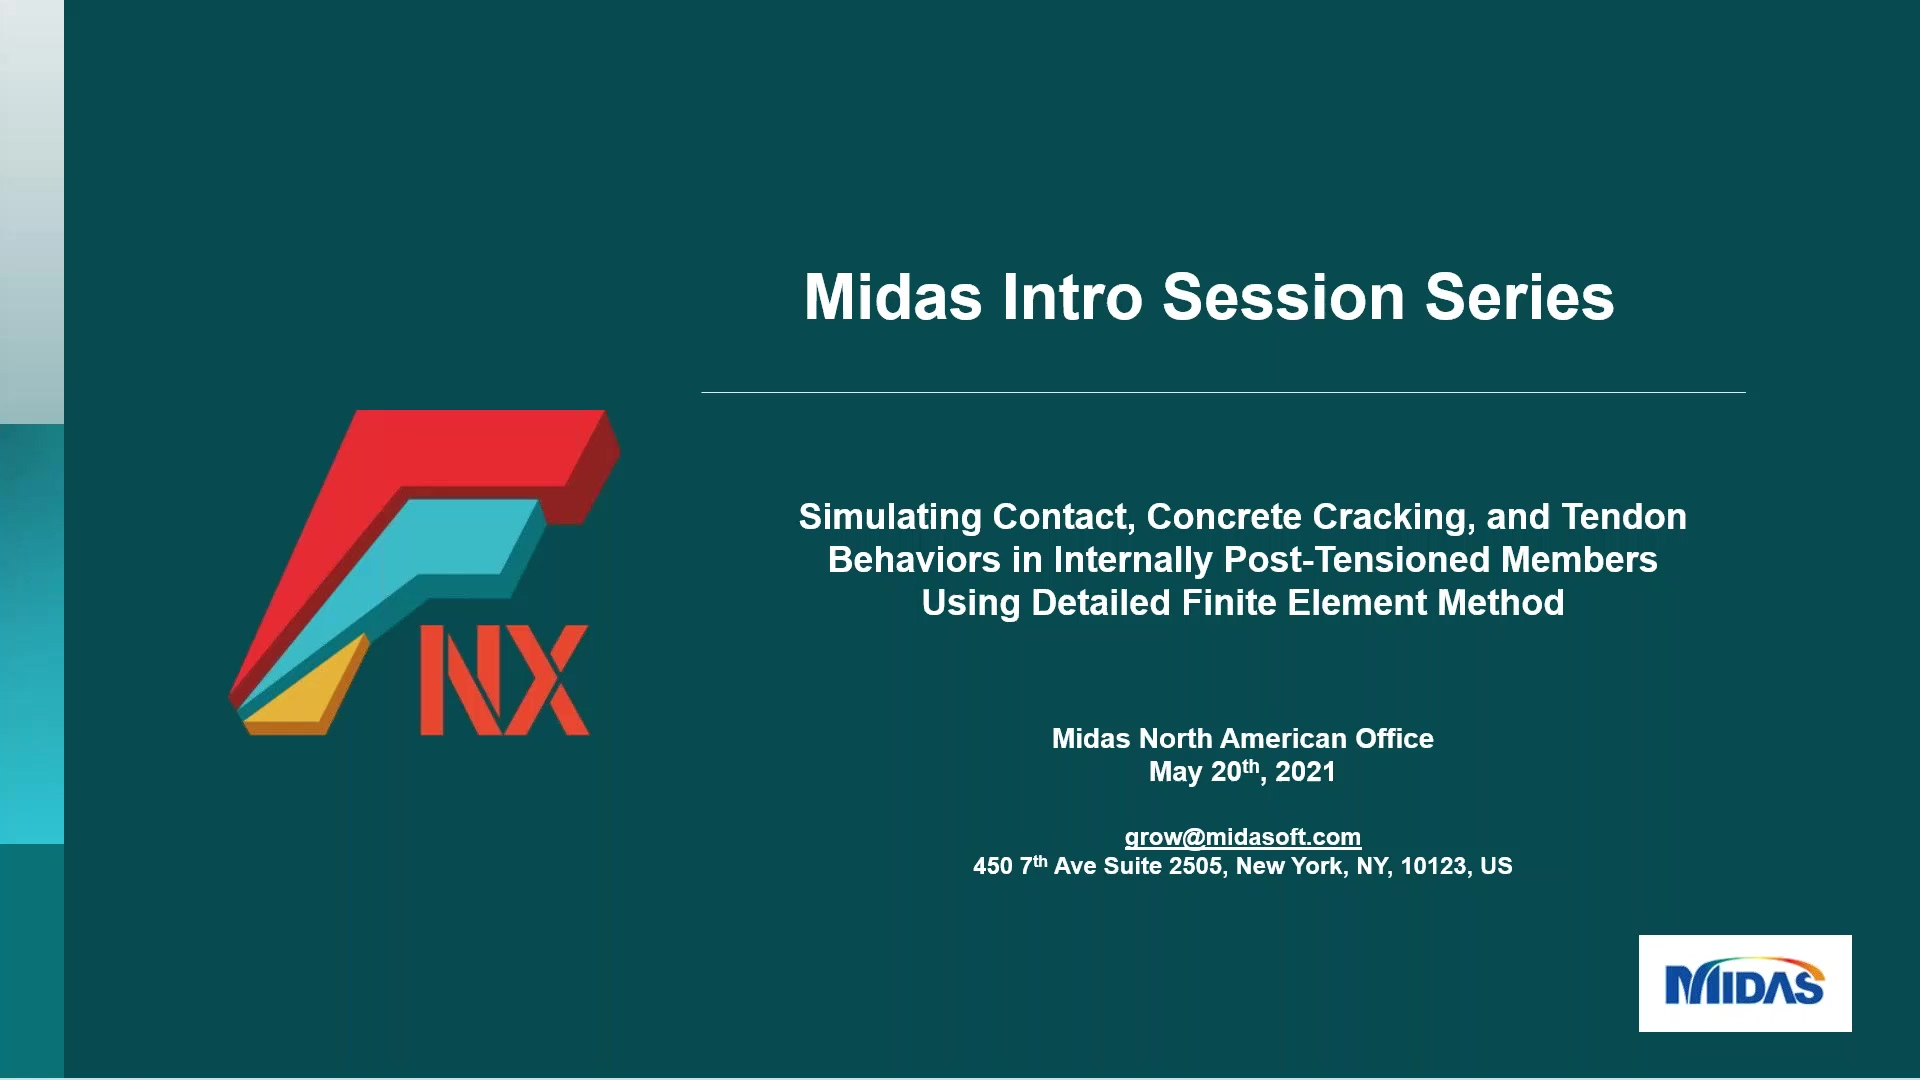 Midas Intro Session_JC_Simulating Contact, Concrete Cracking, and Tendon Behaviors Using Detailed Fi